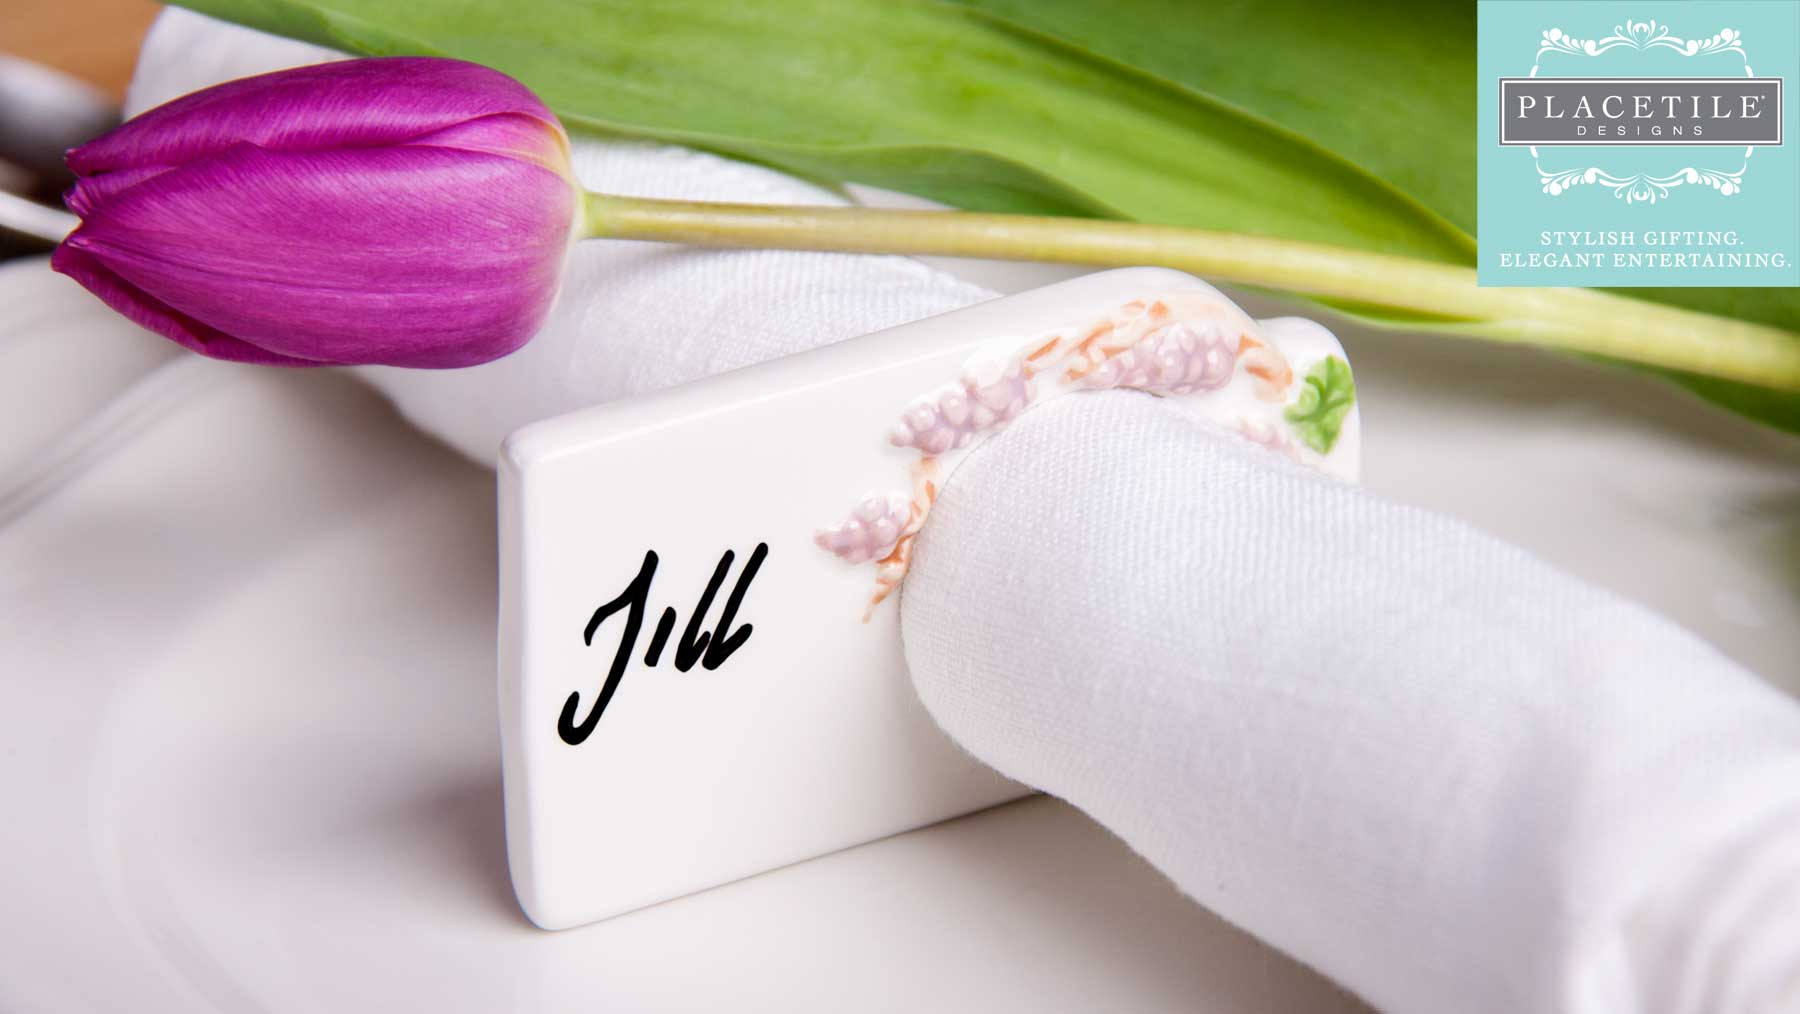 13-Placetile-Designs-Serviette-Holder-Philip-Murray-Photography-Commercial-Dublin